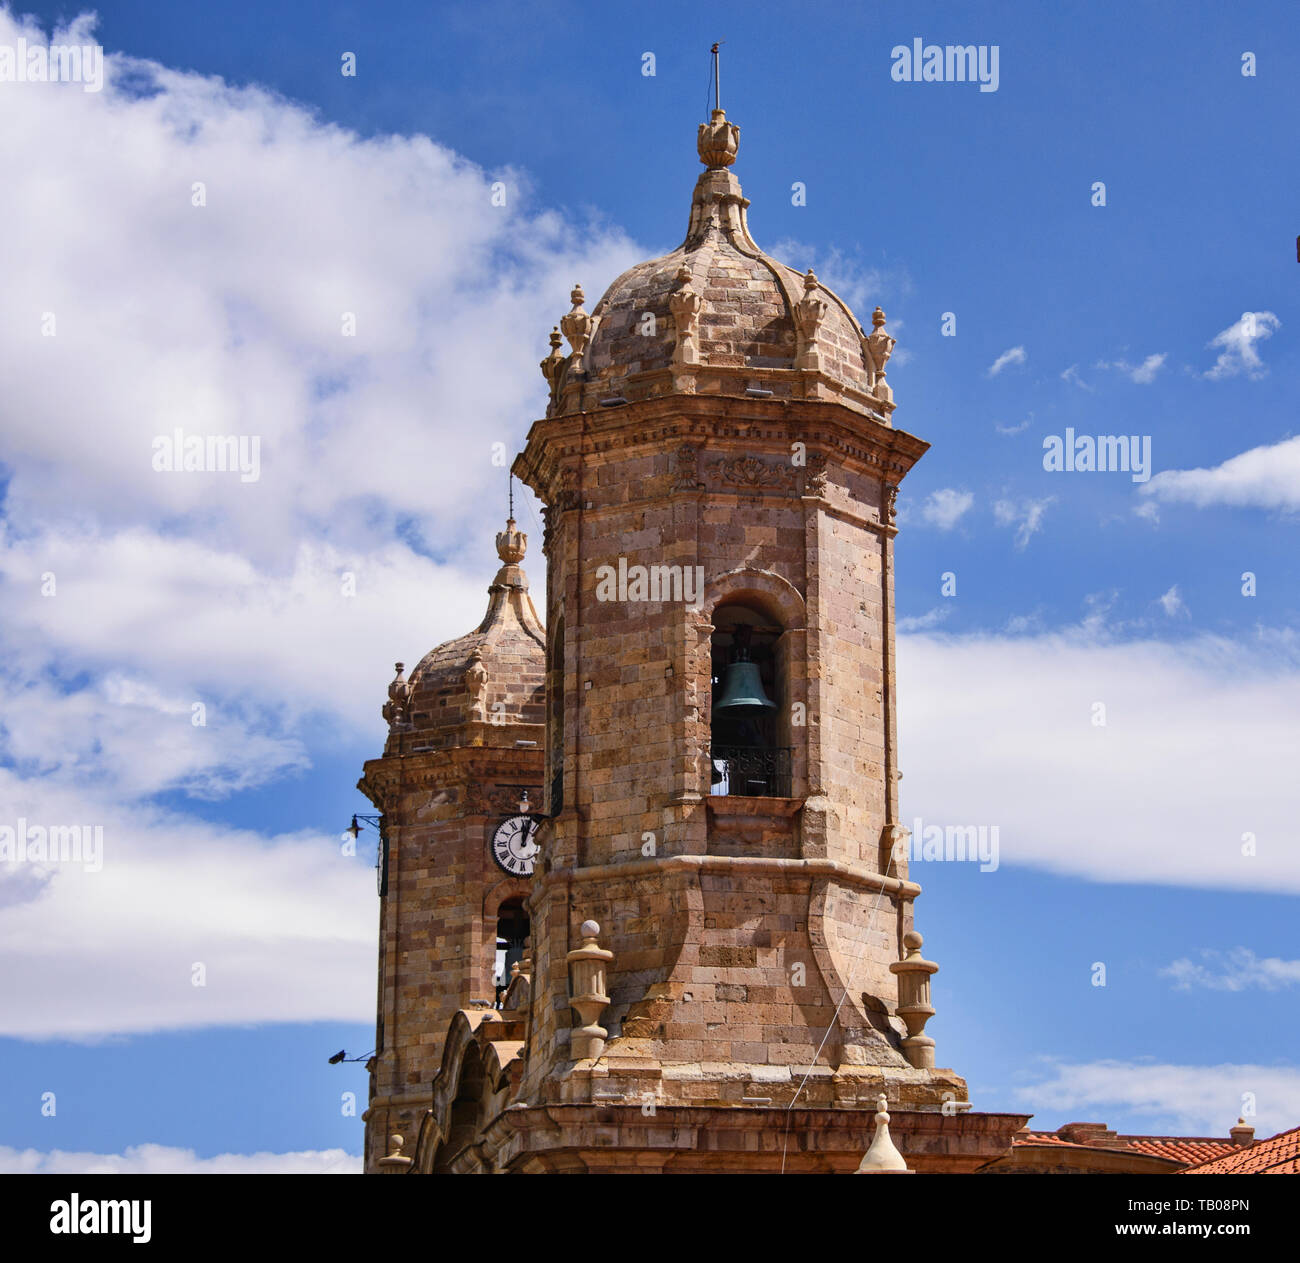 The Cathedral Basilica and main square, Potosí, Bolivia - Stock Image